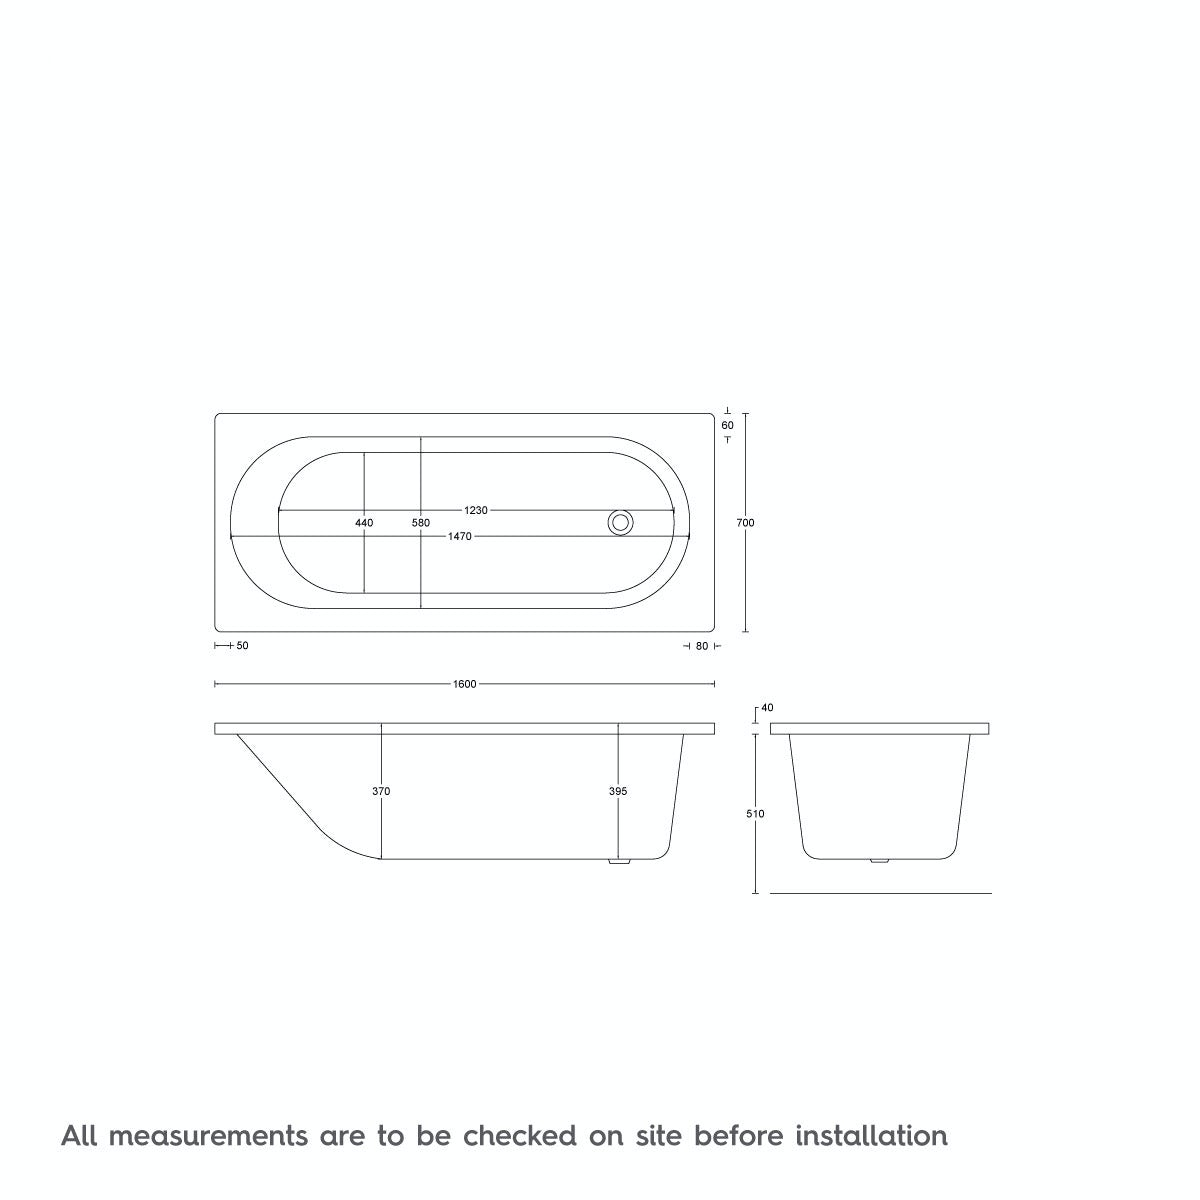 Dimensions for Mode Richmond single end 6 jet whirlpool bath 1600 x 700